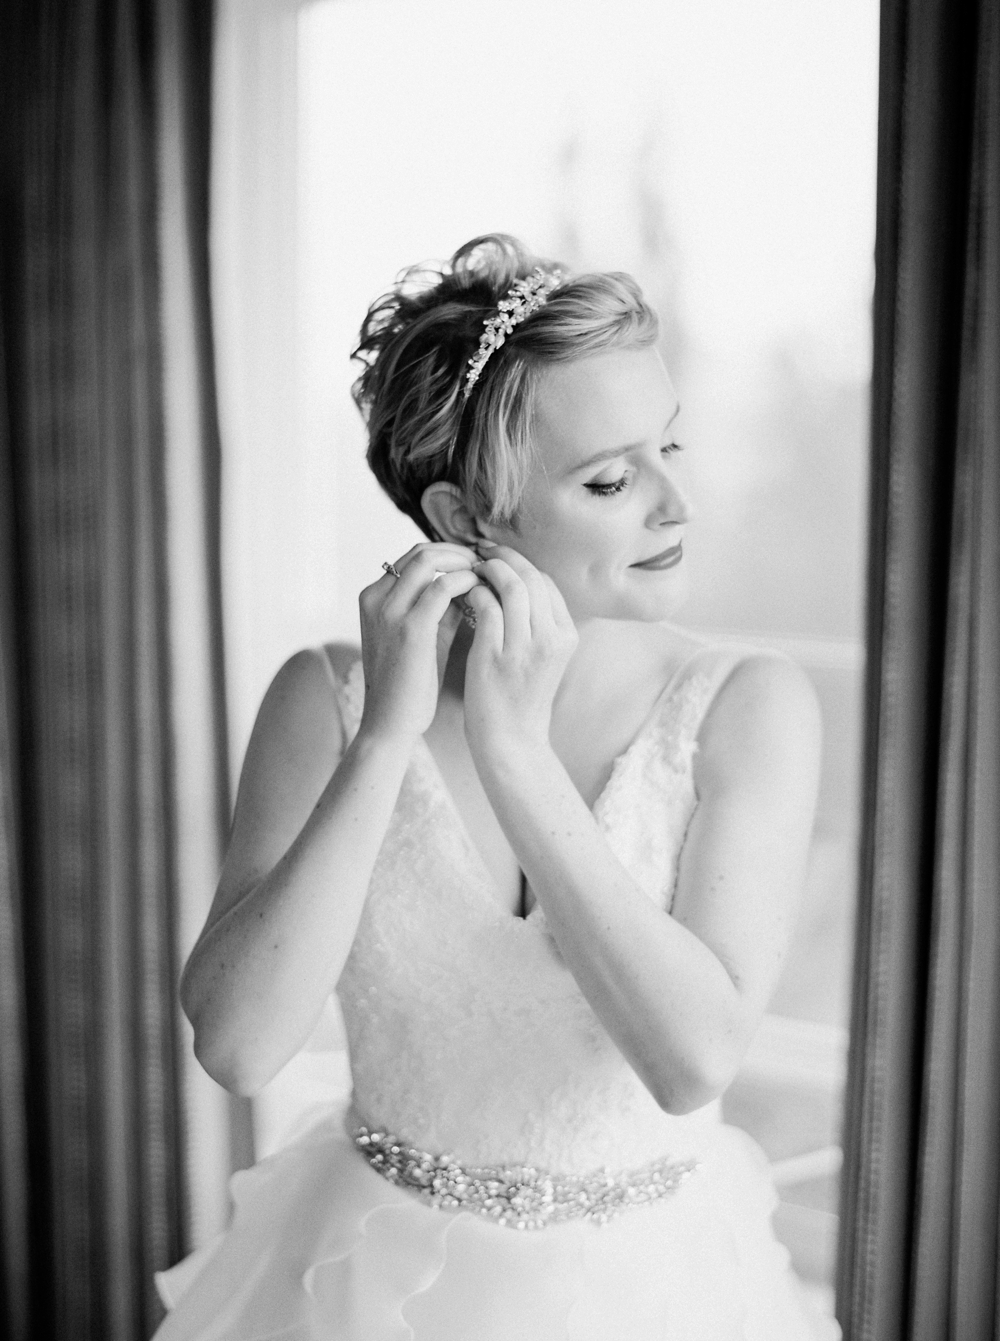 Calgary wedding photographers | The lake house wedding | bride getting ready | Justine Milton Photography